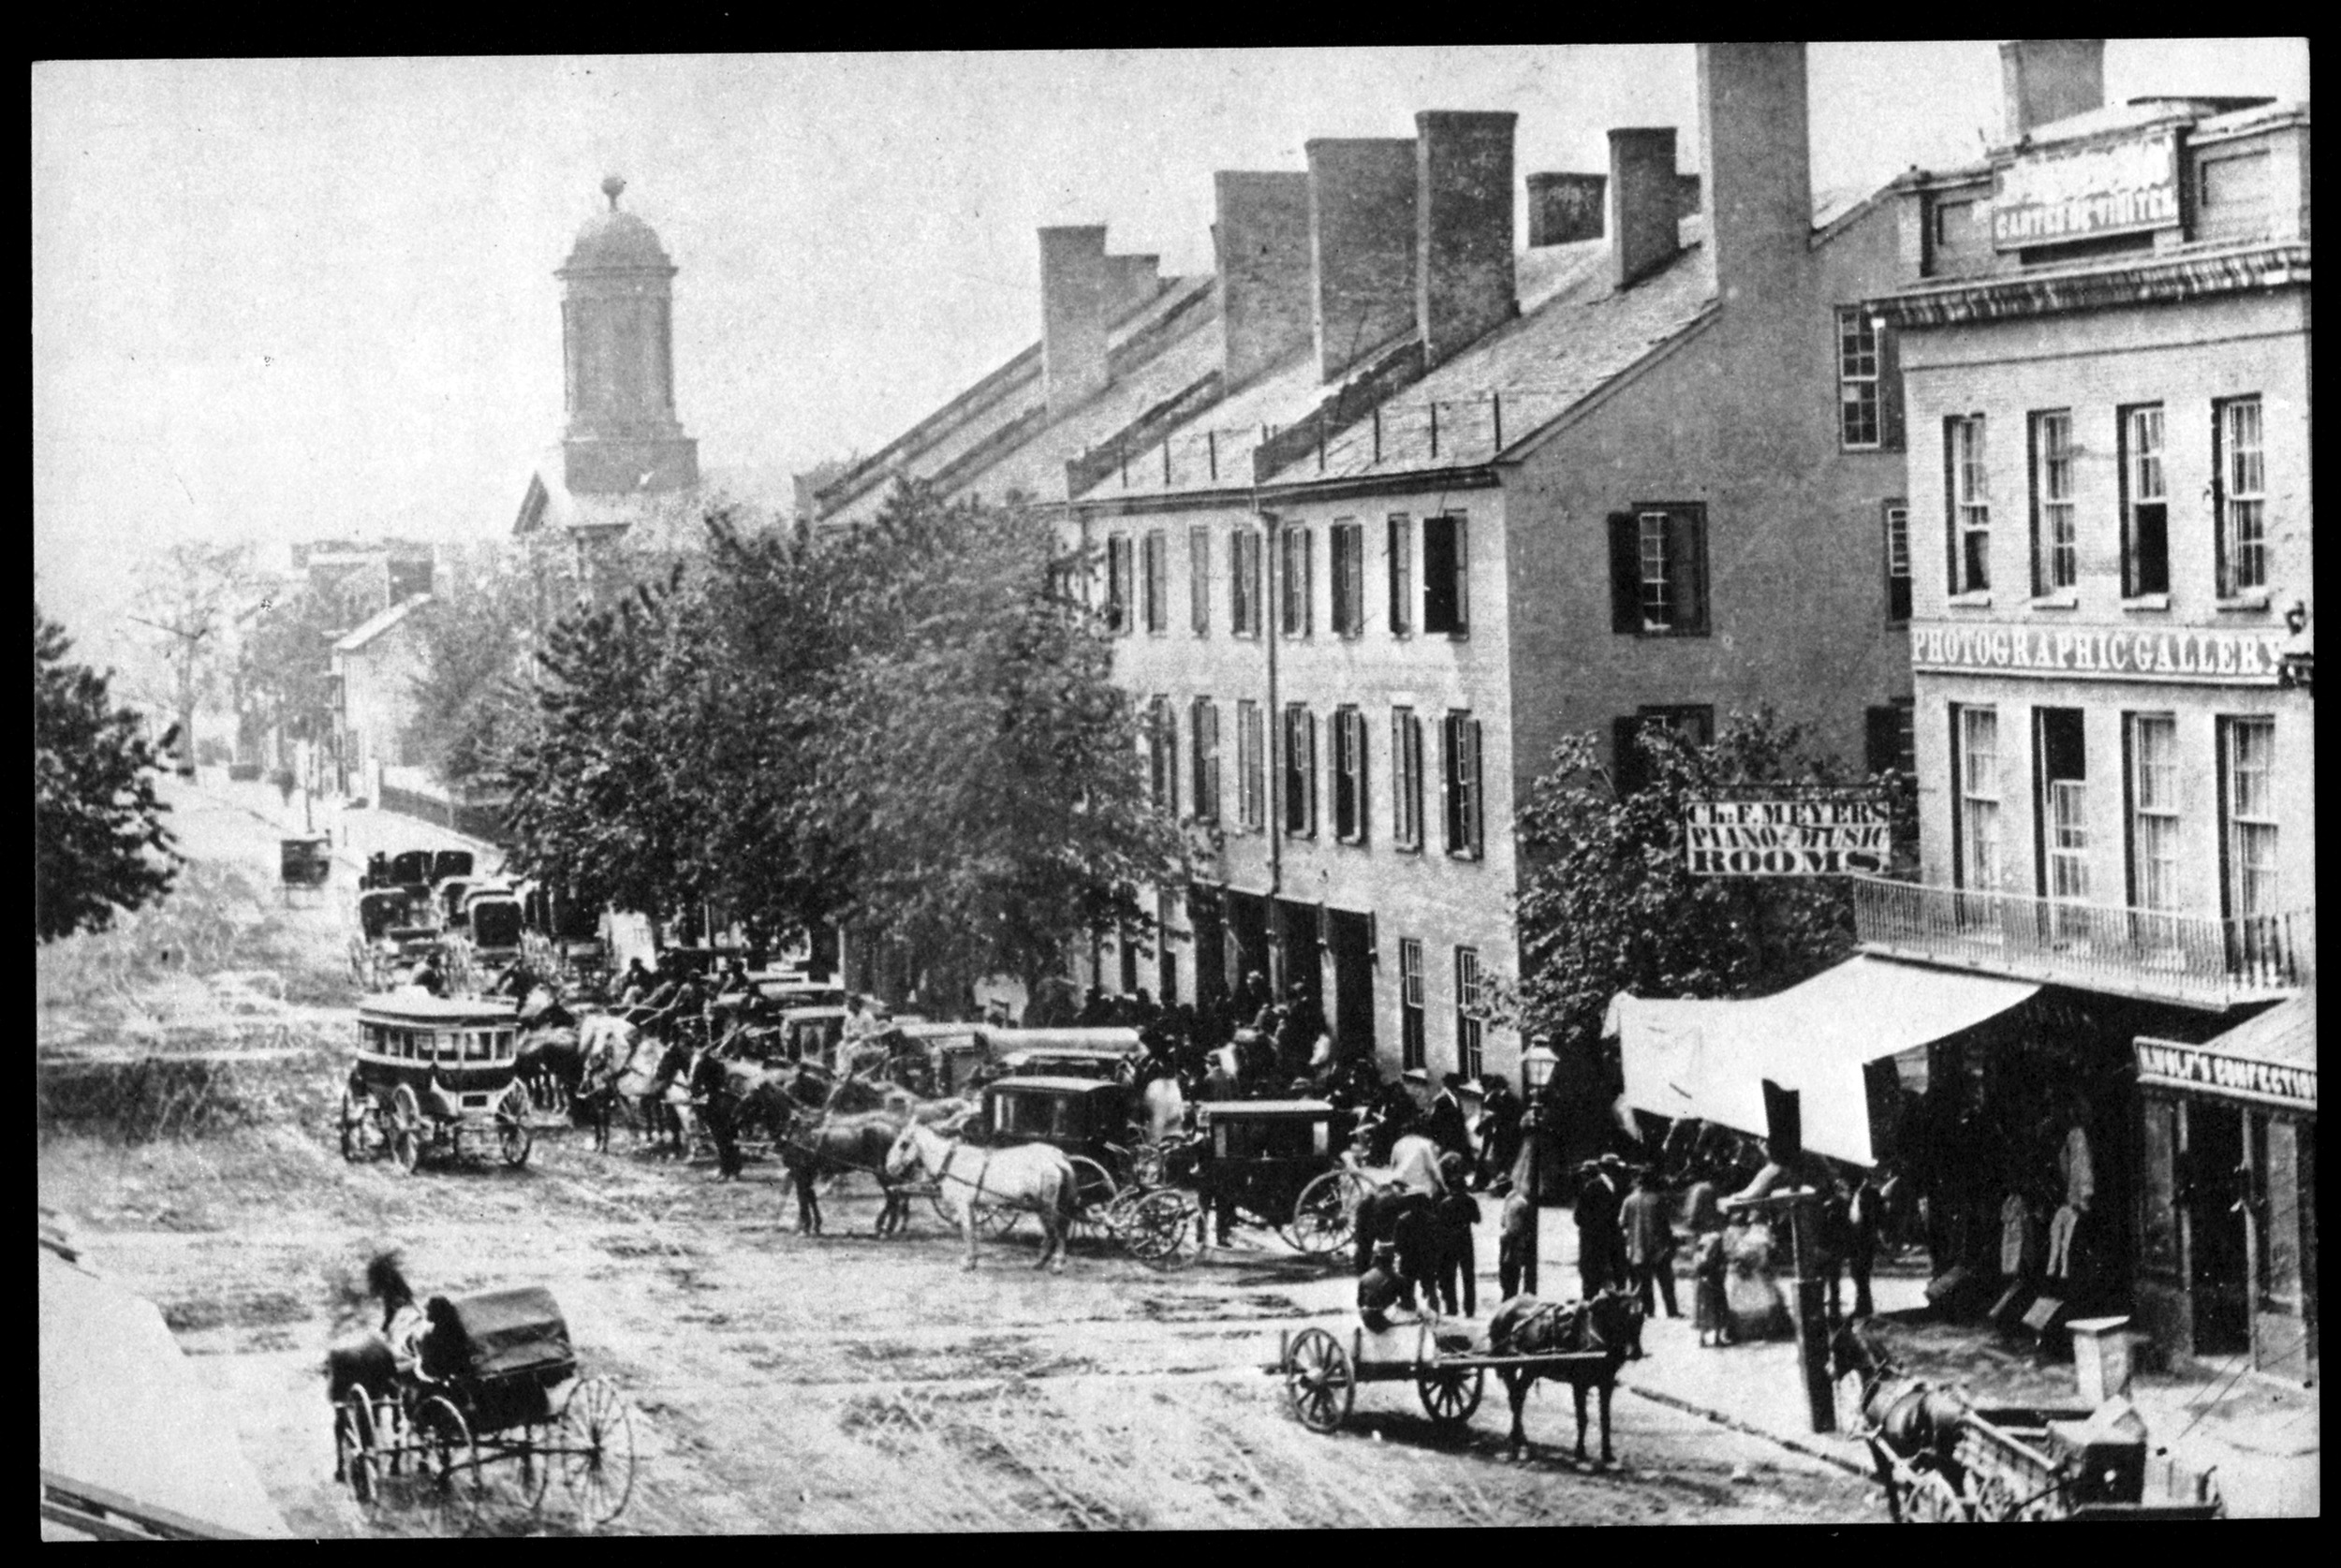 Intersection of North Limestone and Main Streets,1840's